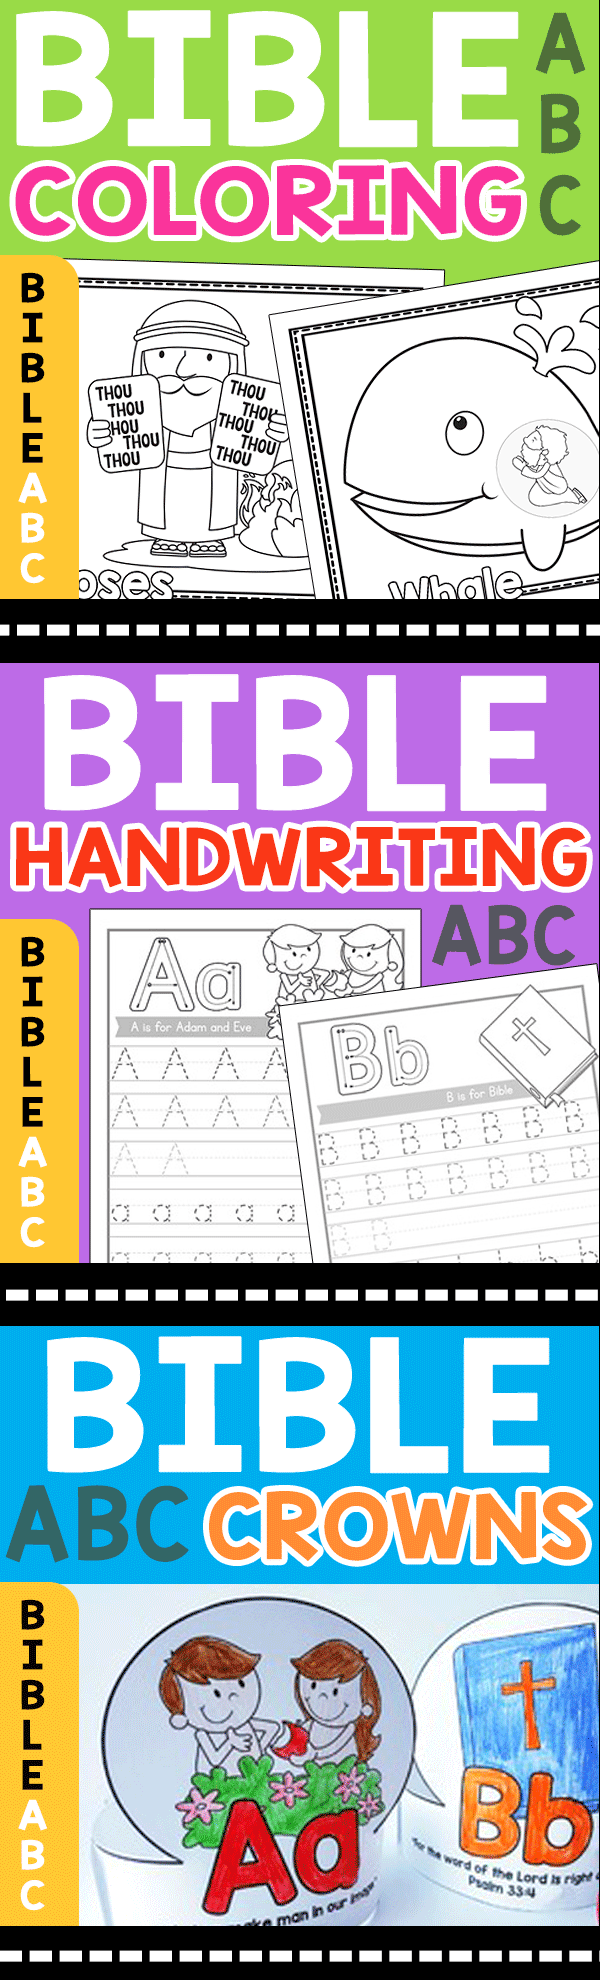 Bible Coloring Pages, Bible Handwriting Worksheets, Bible Crowns ...